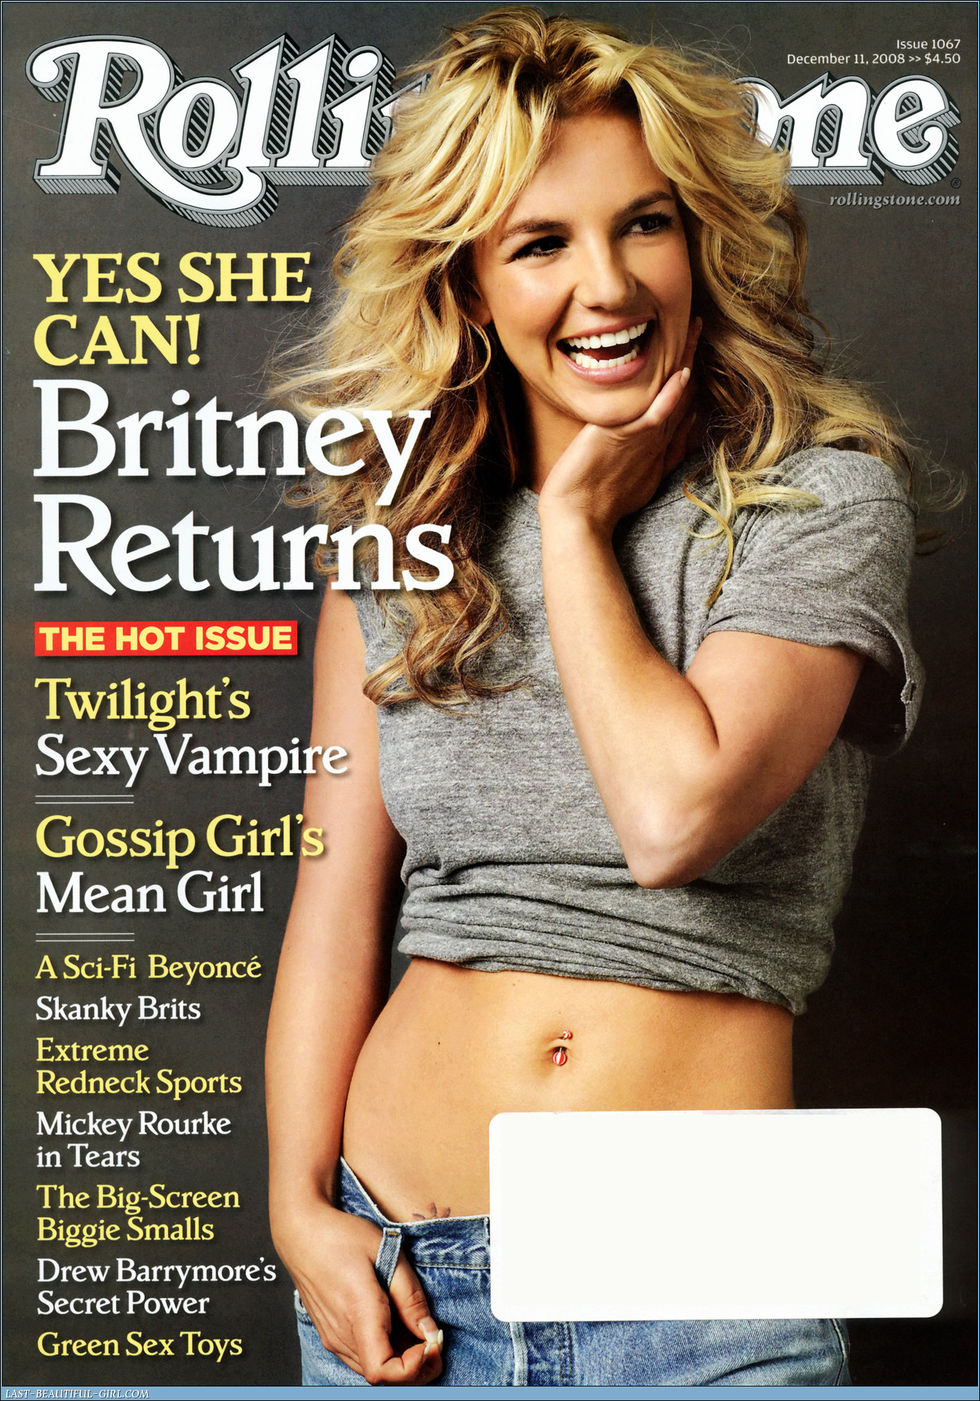 britney-spears-rolling-stone-magazine-december-2008-hq-scans-02